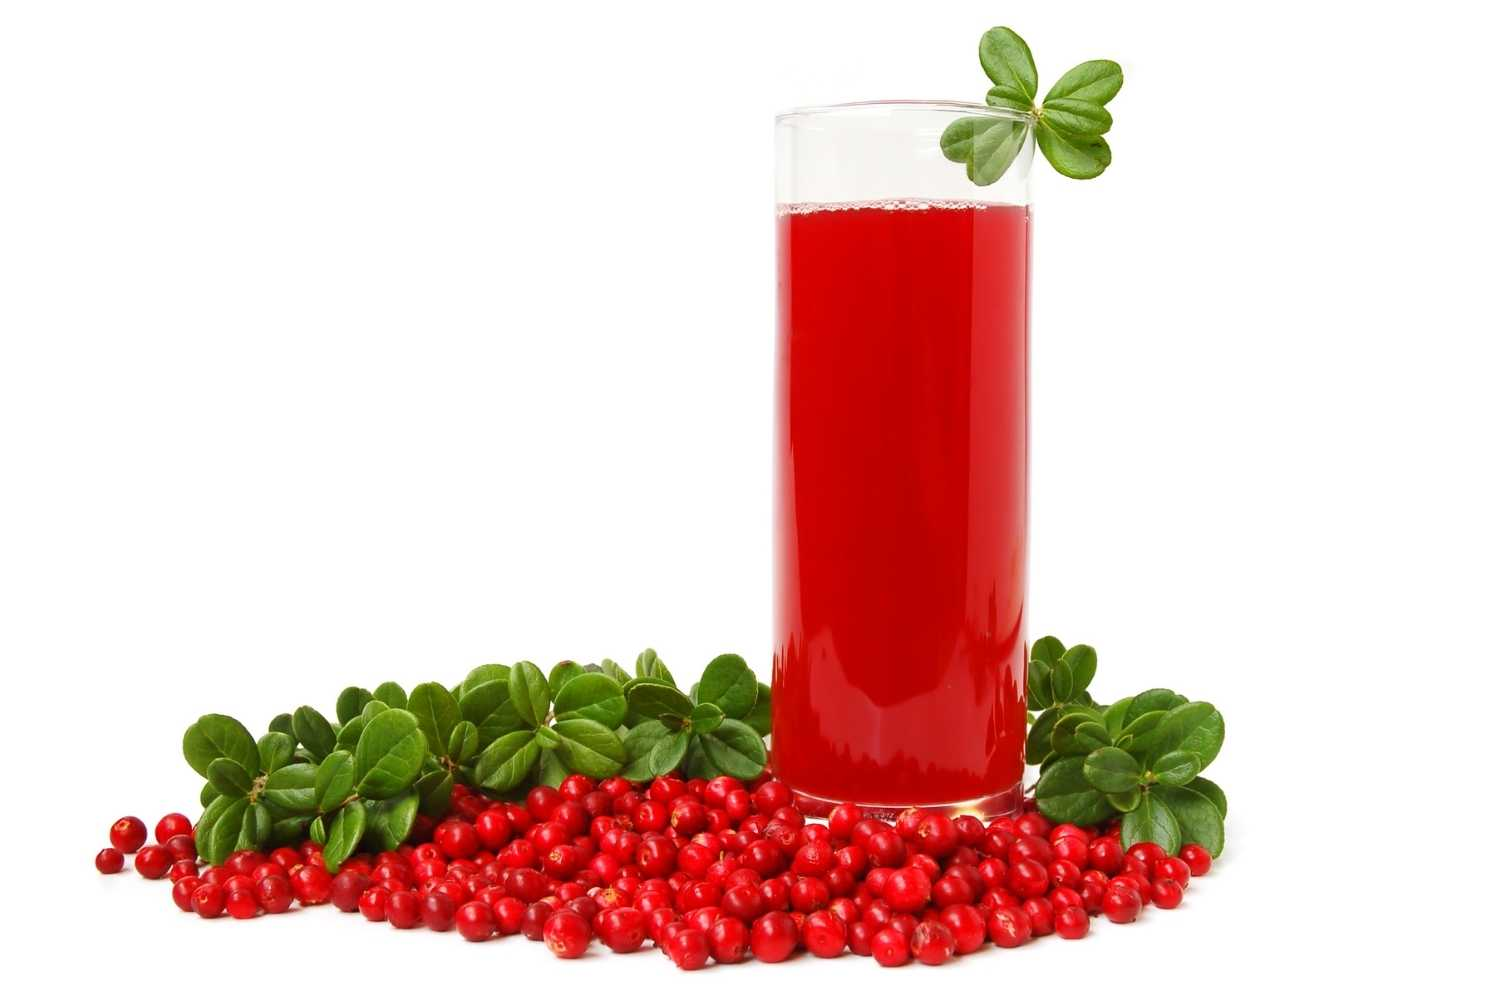 Atlantic Quench Cranberries Inc. Marketing Strategy Analysis